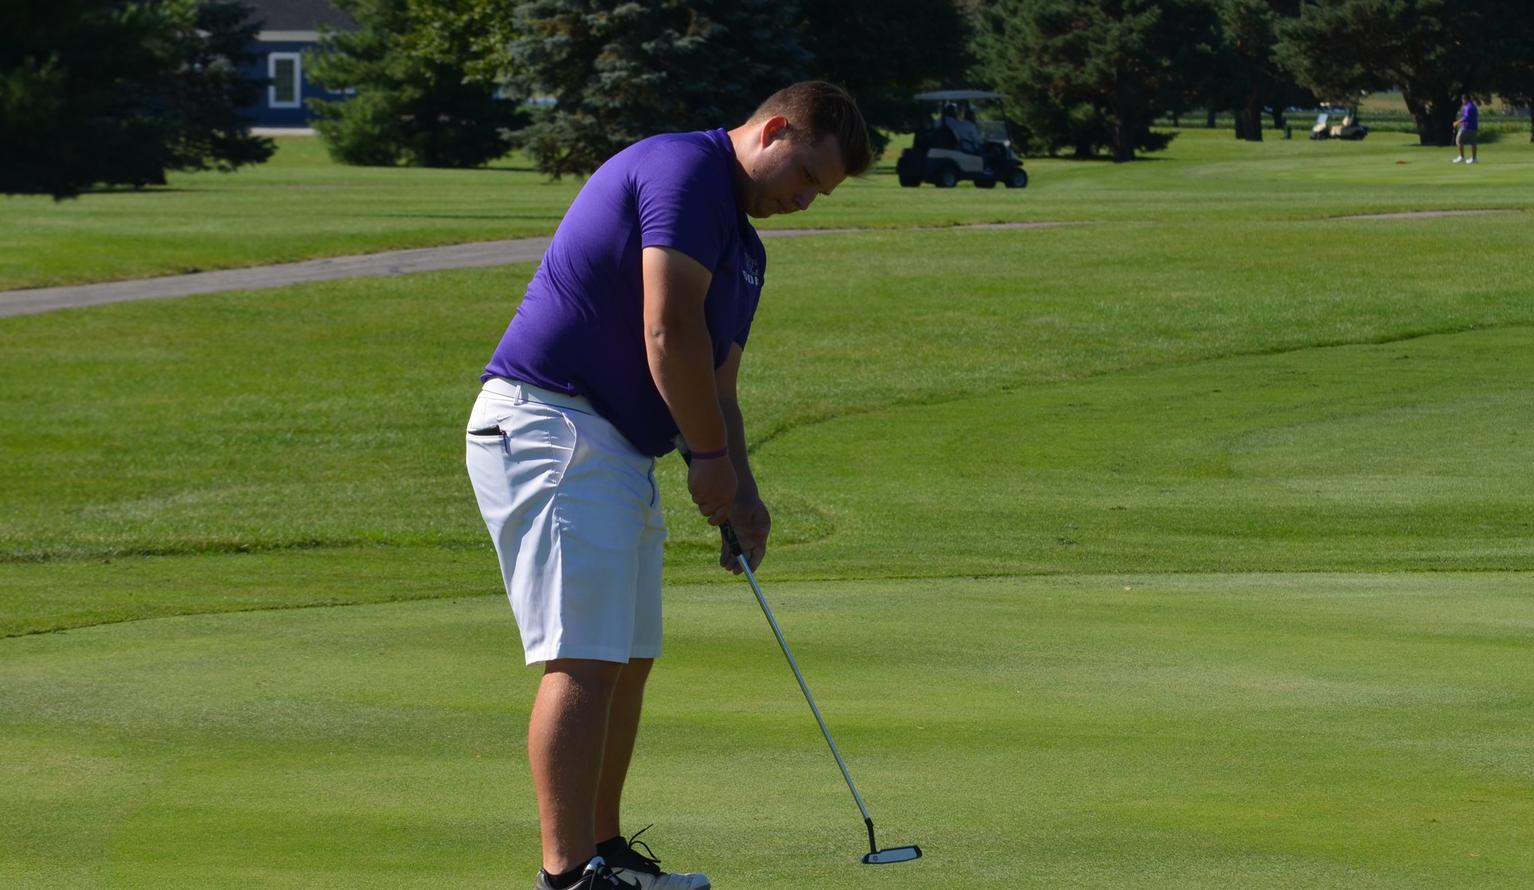 Dolan Captures a Top Ten Finish to Lead Men's Golf